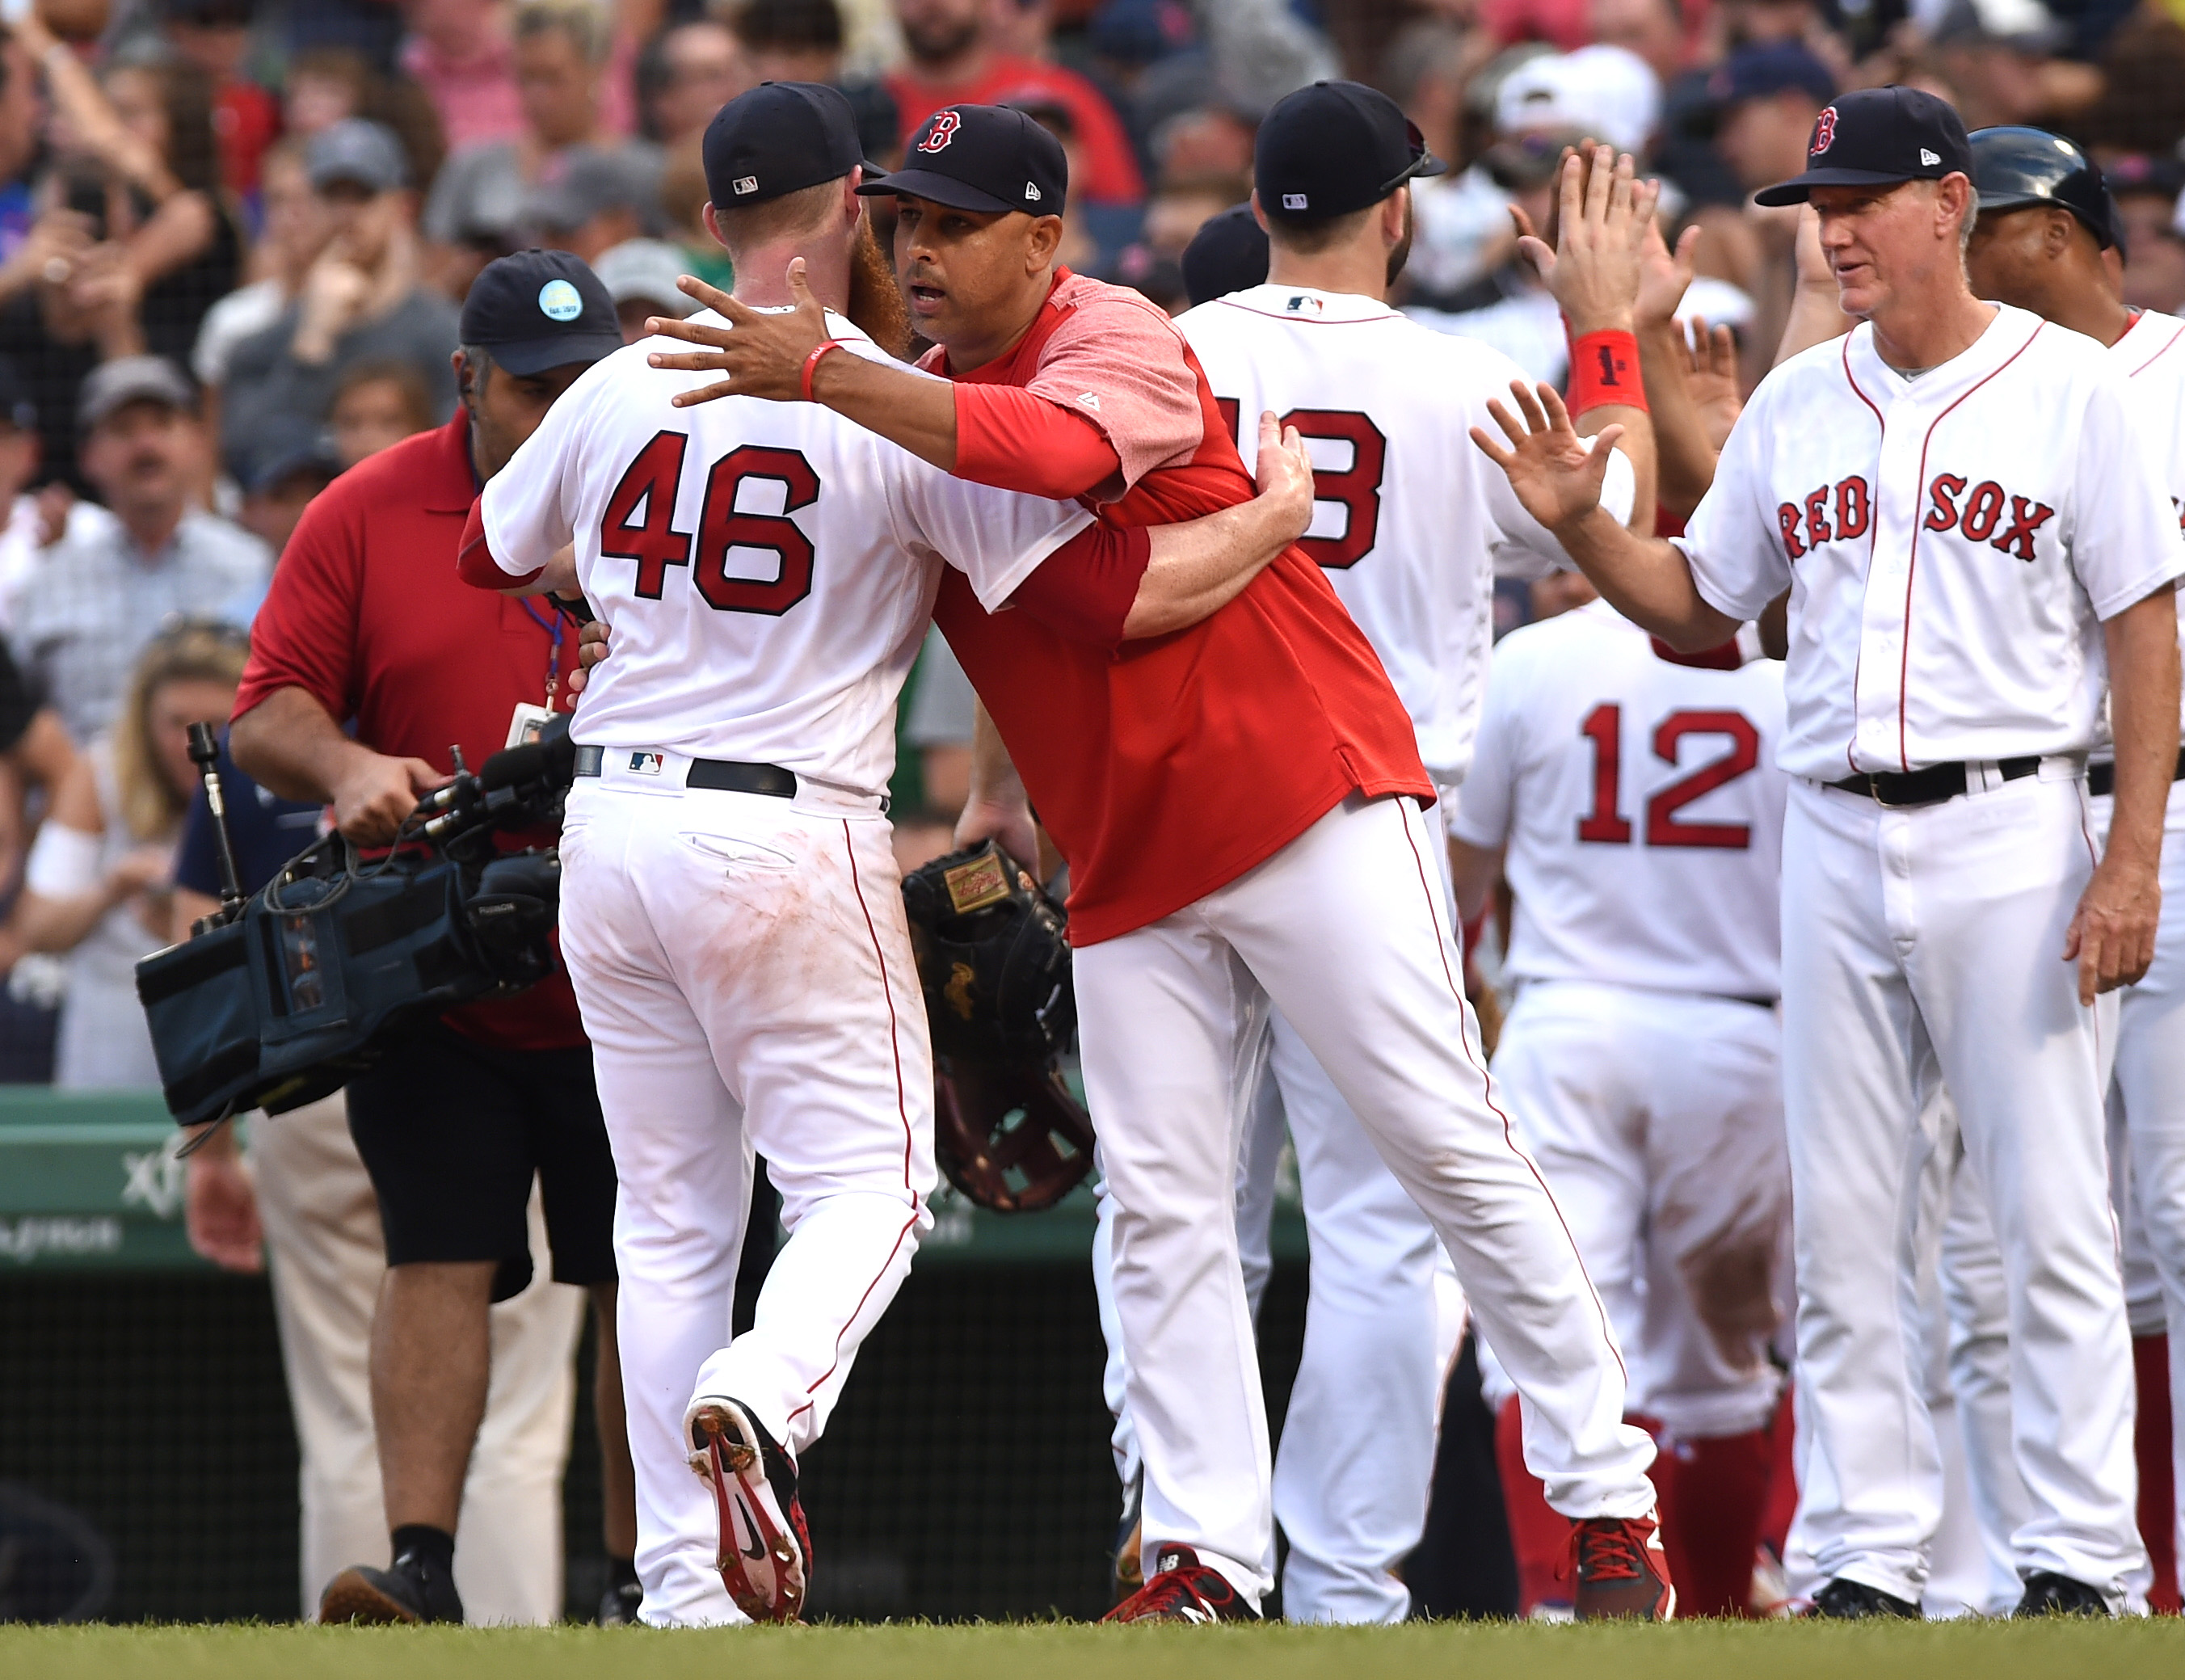 Craig Kimbrel struggling immensely during great Red Sox Run